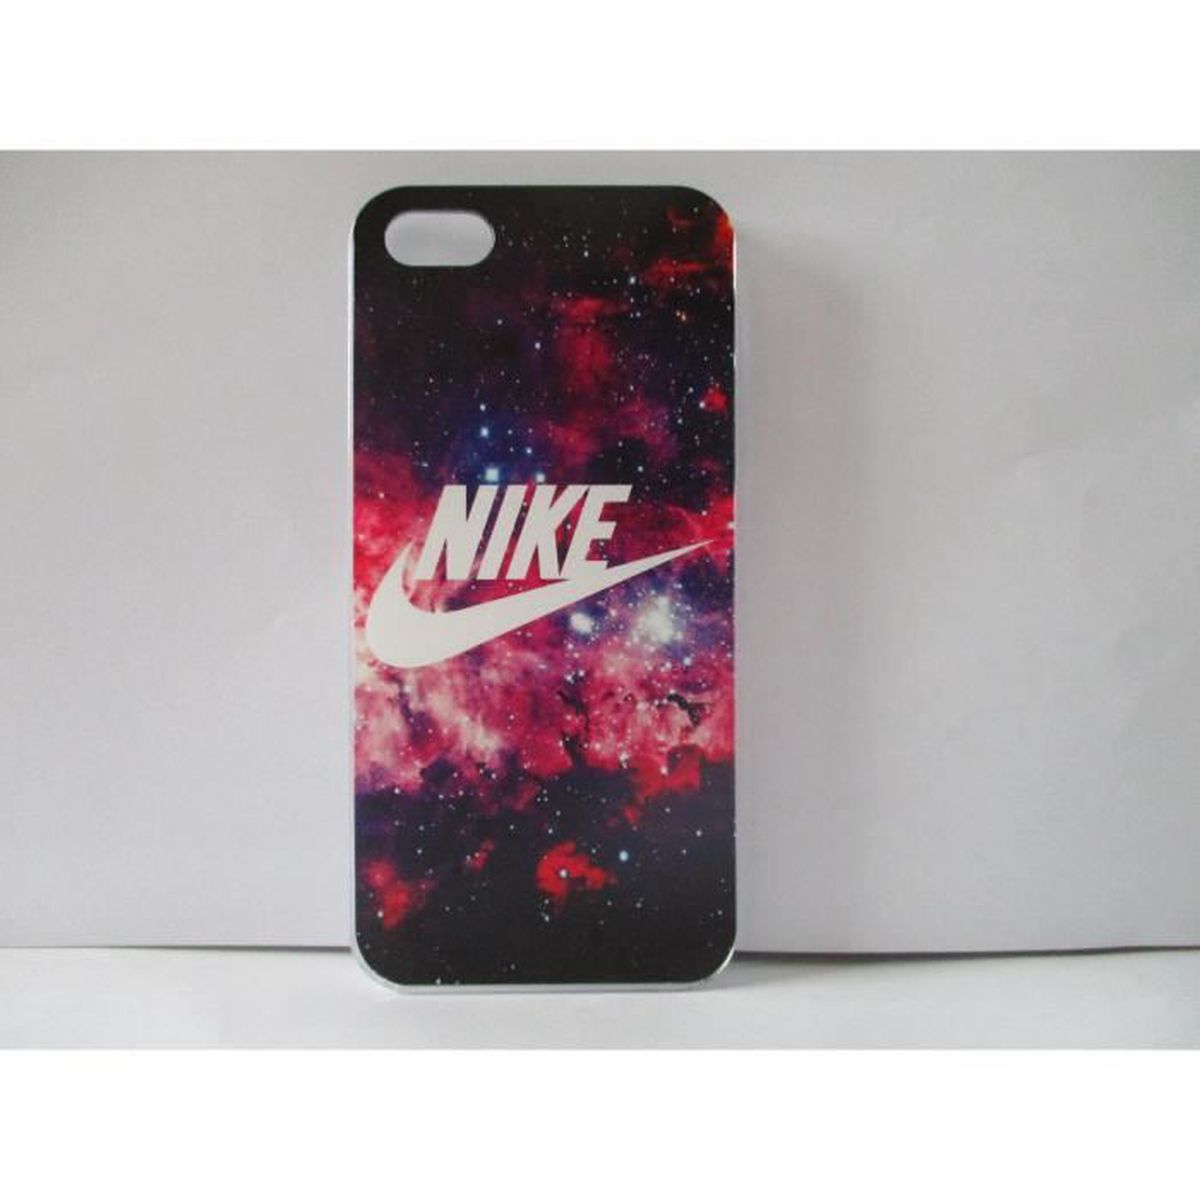 coque nike iphone 5 5s se neuf motif e achat coque. Black Bedroom Furniture Sets. Home Design Ideas